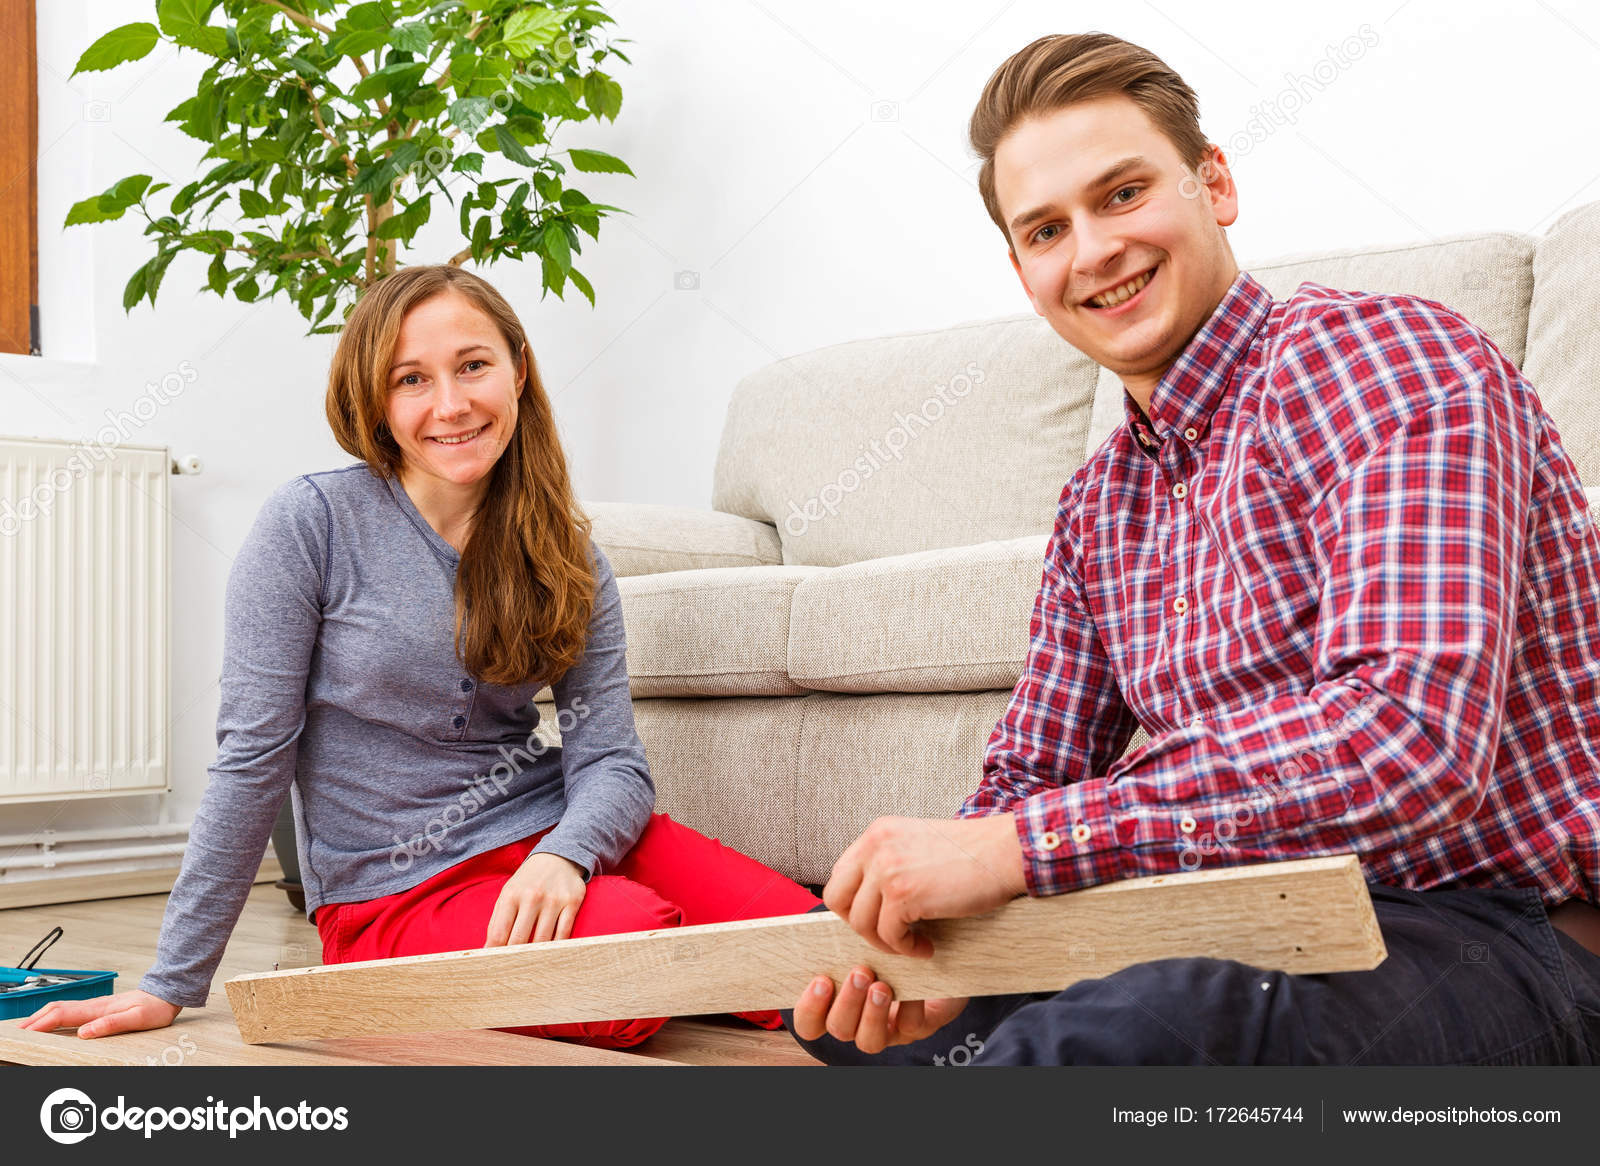 Do it yourself home improvement stock photo obencem 172645744 do it yourself home improvement stock photo solutioingenieria Image collections